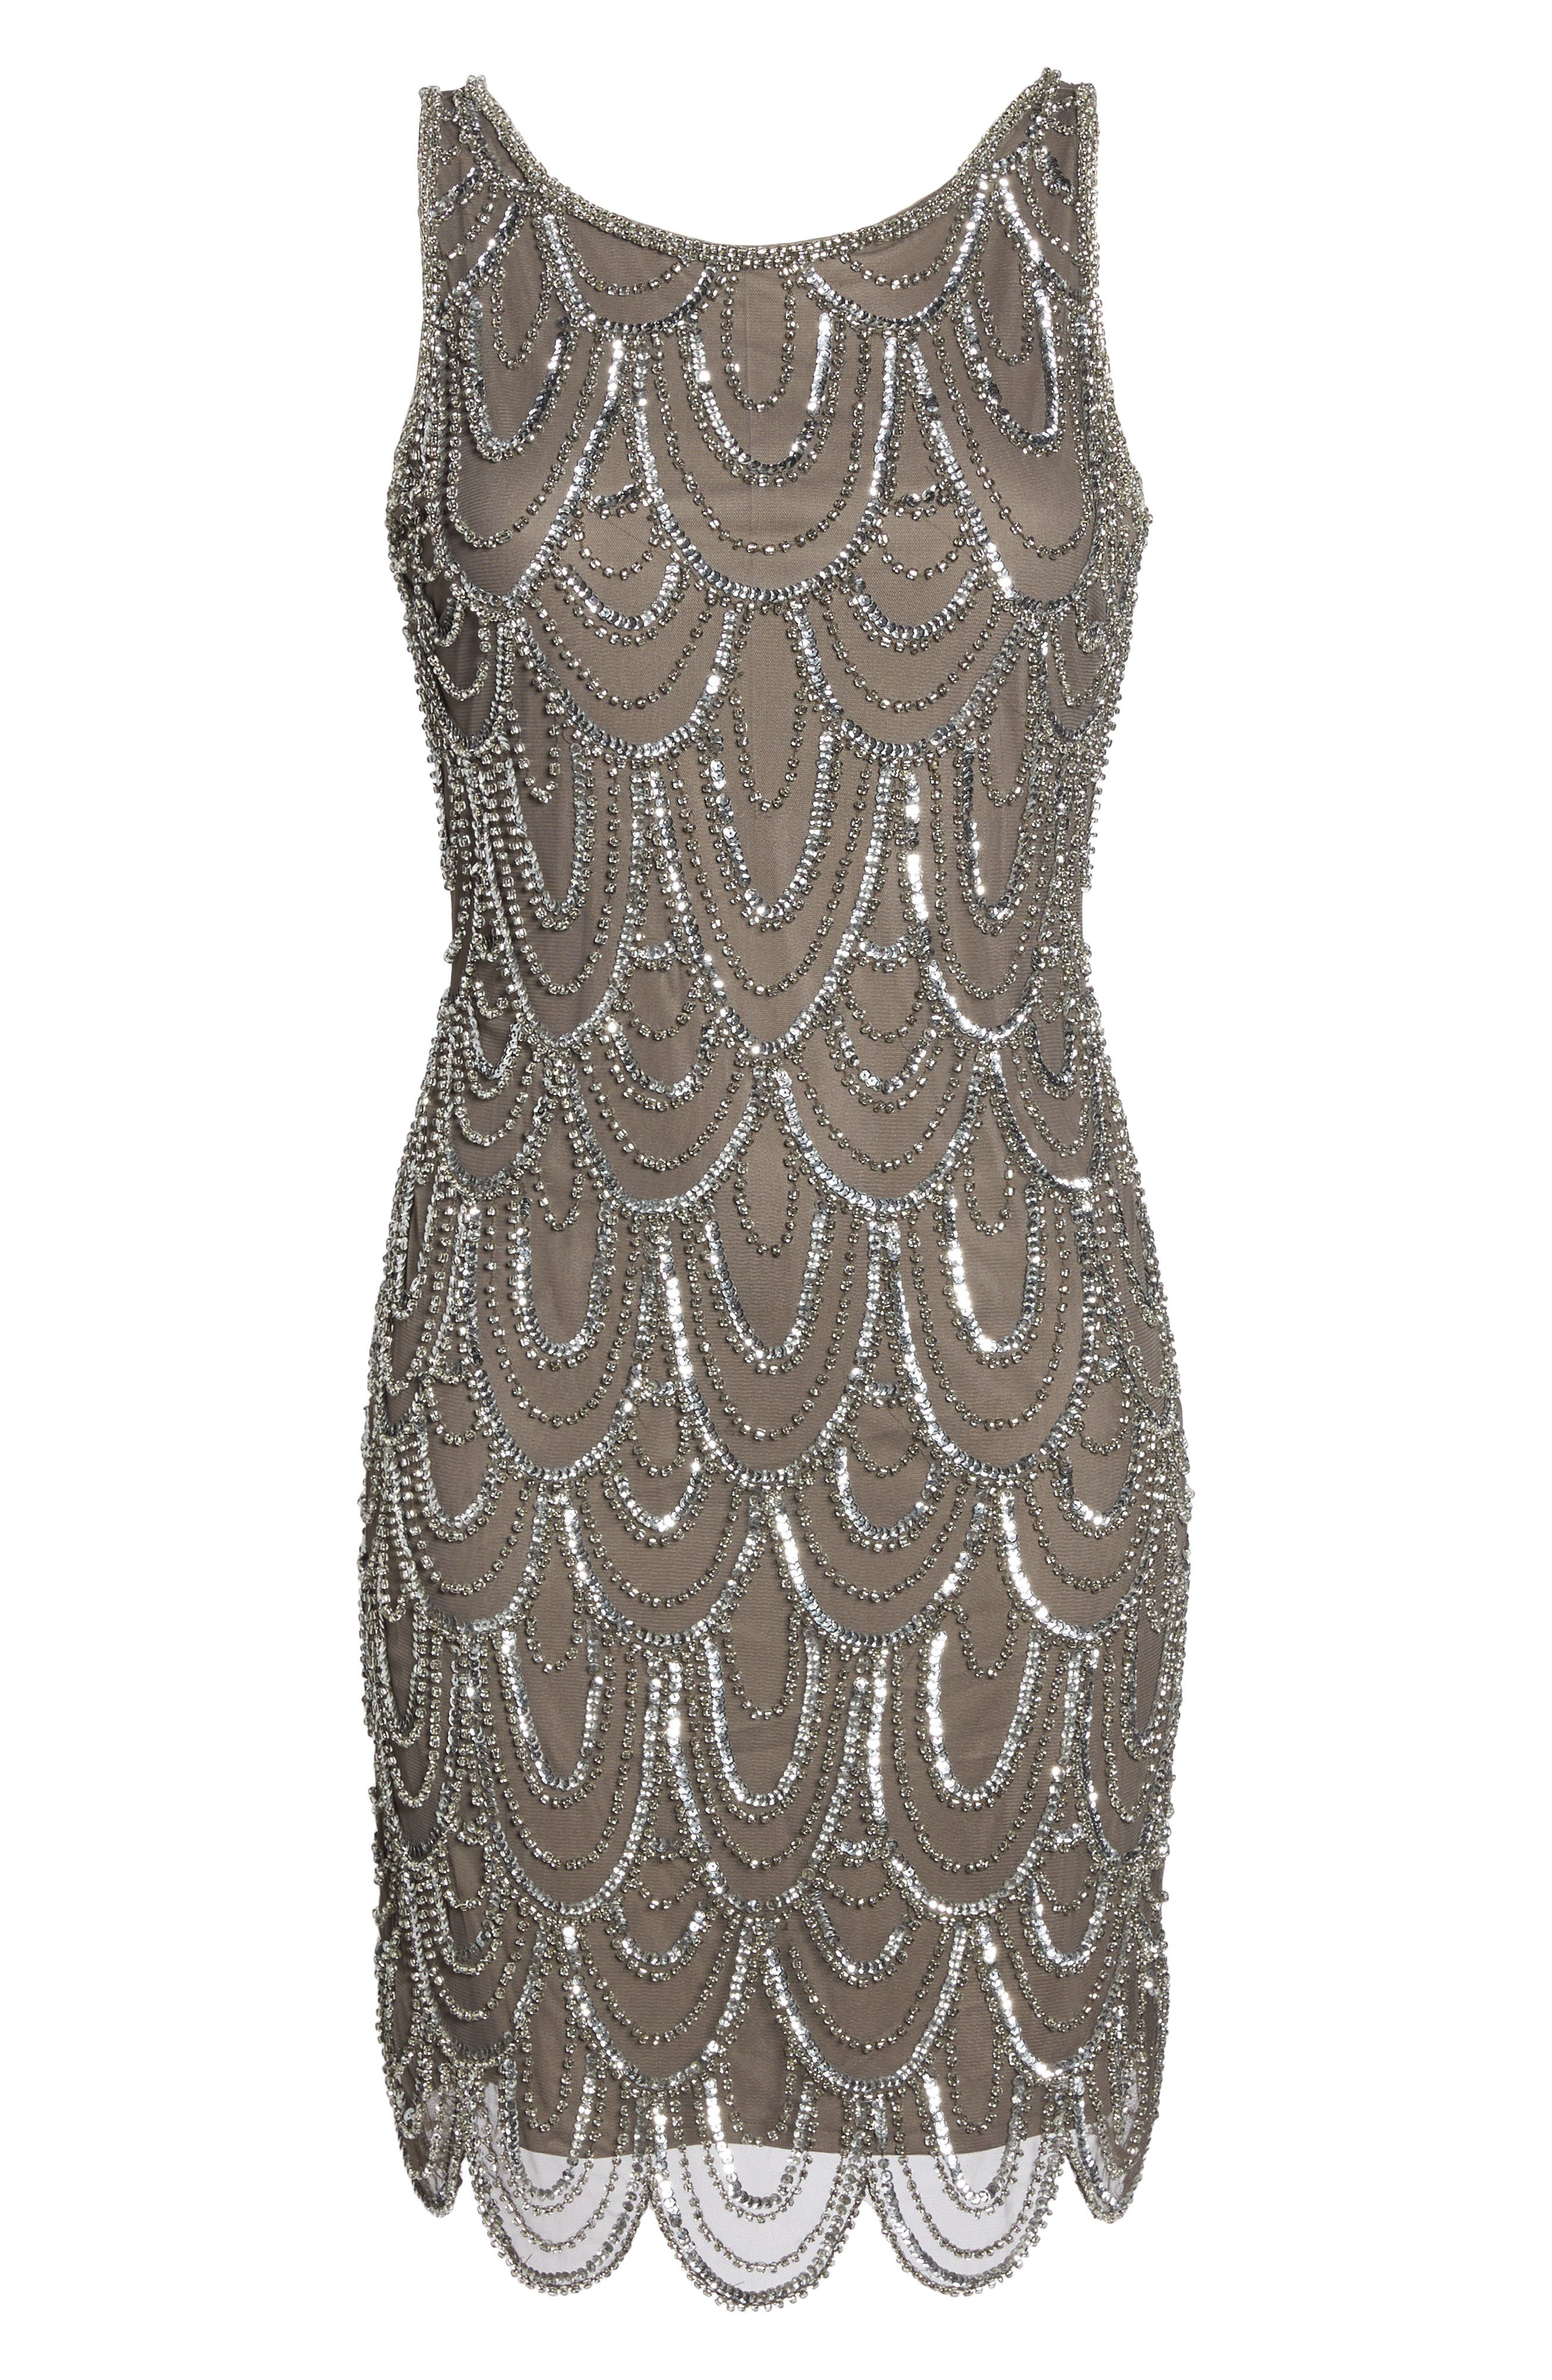 Embellished Mesh Sheath Dress,                             Alternate thumbnail 7, color,                             073